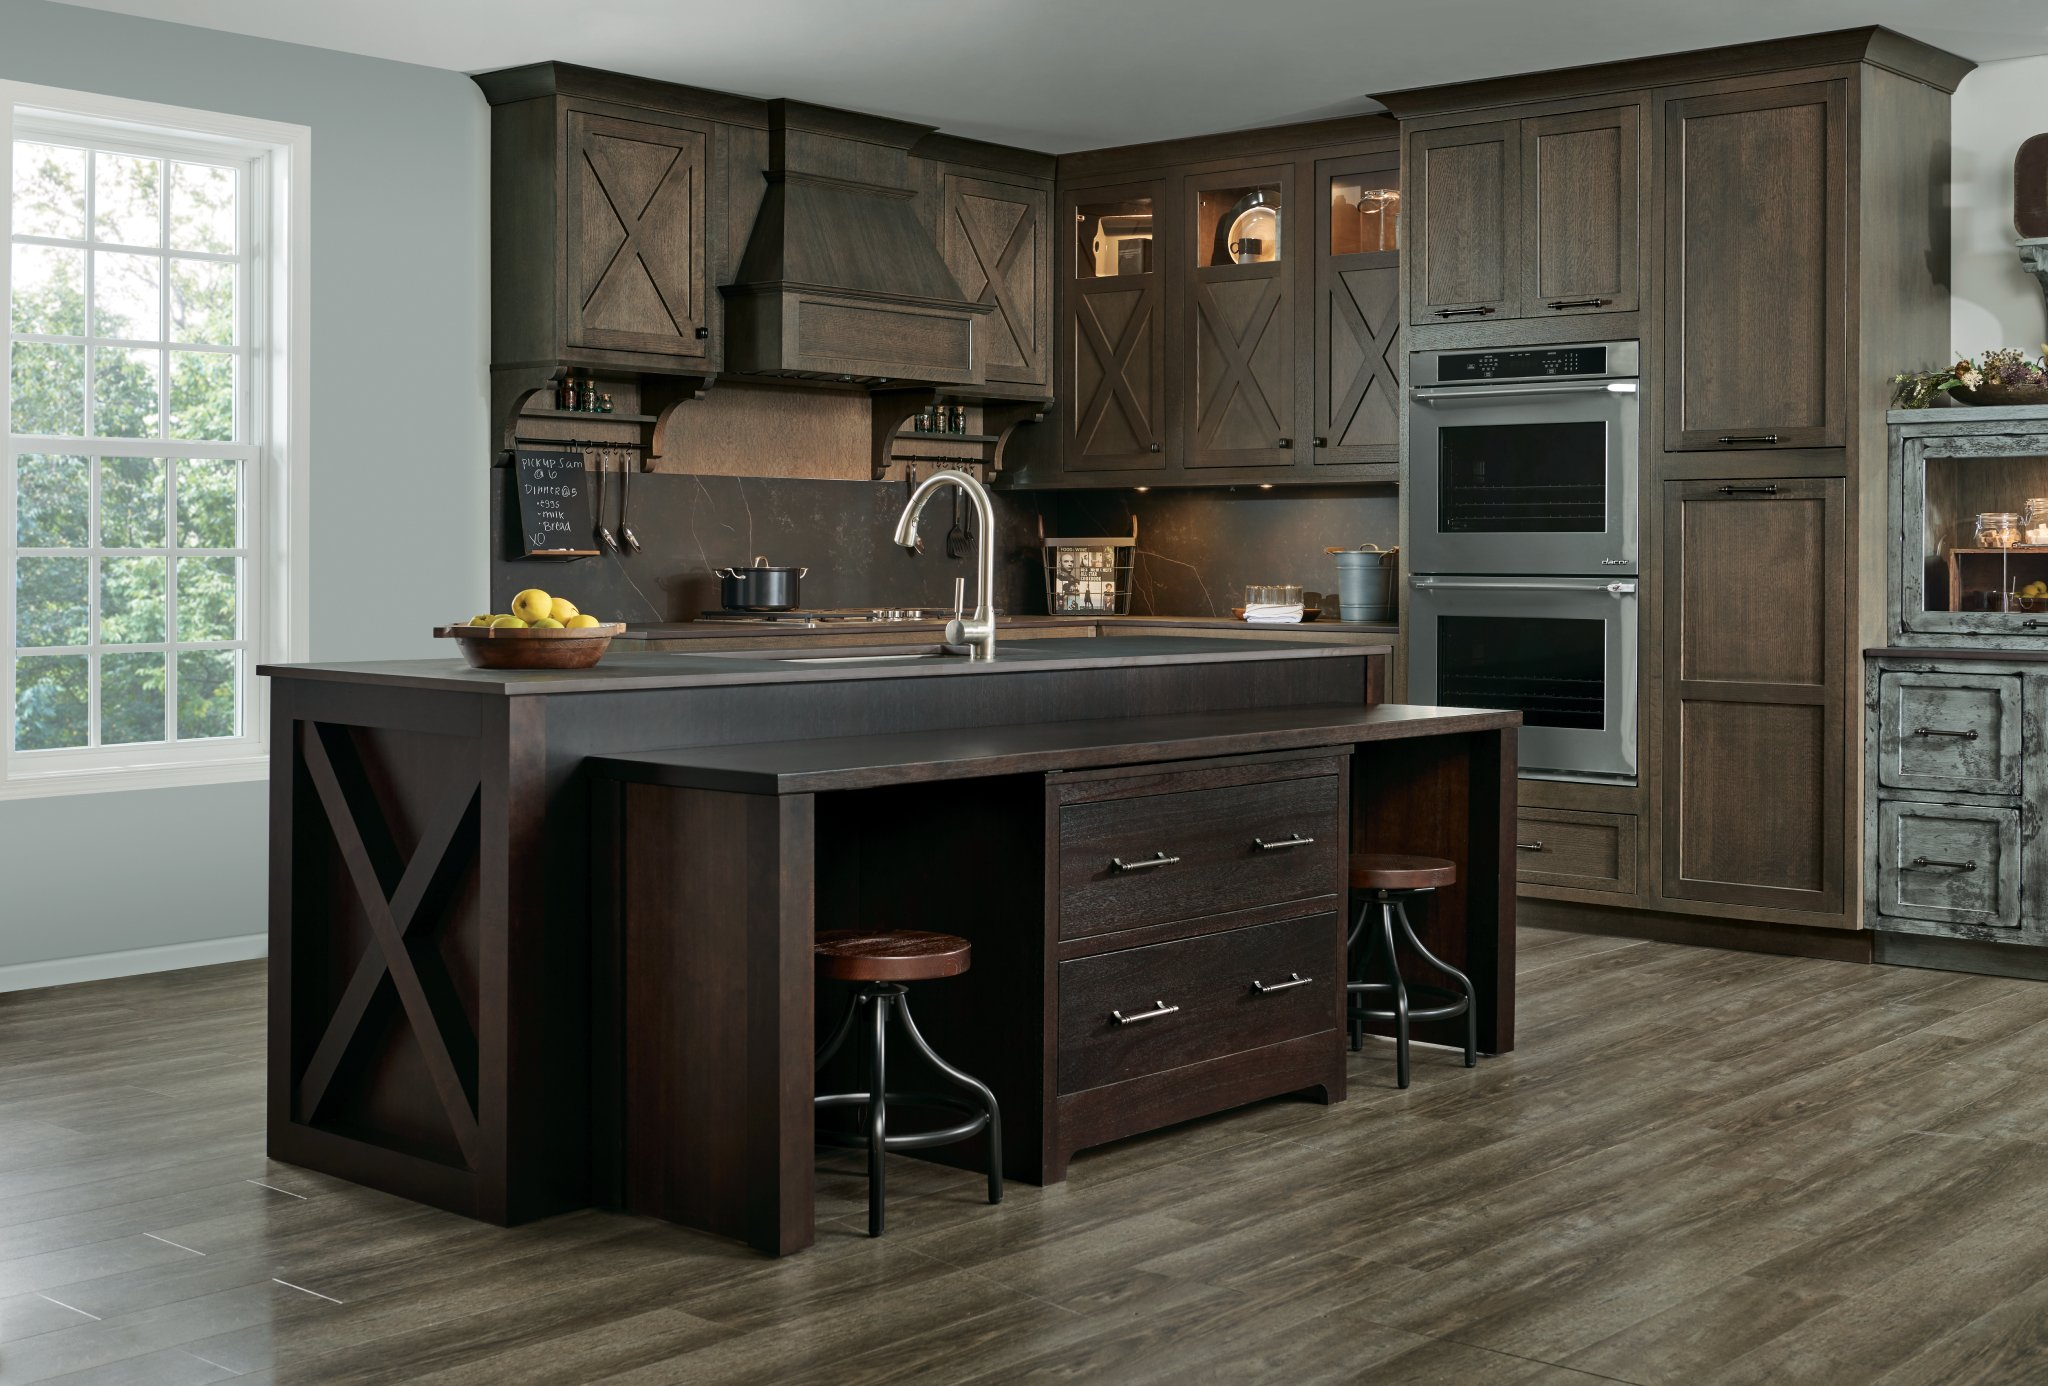 Tips-for-Choosing-High-Quality-Kitchen-Cabinets